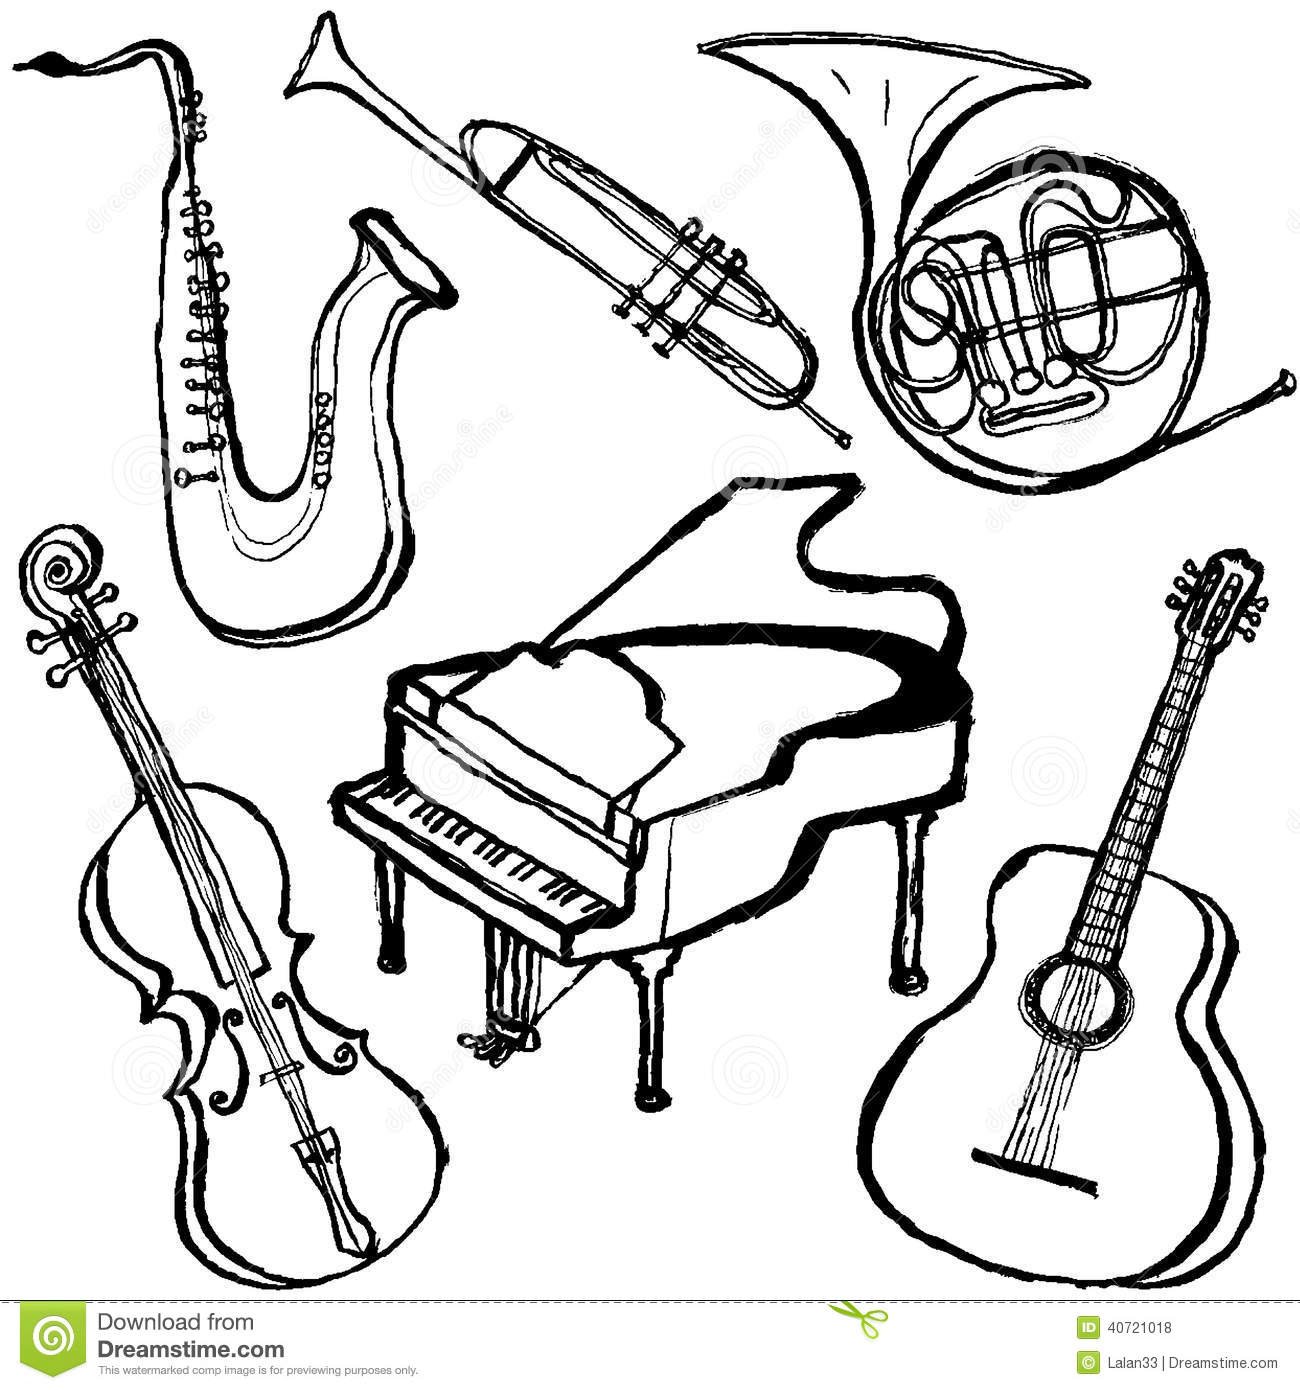 colouring pictures of musical instruments form 1 ocs 2016 2017 sound and timbre the orchestra of pictures instruments colouring musical